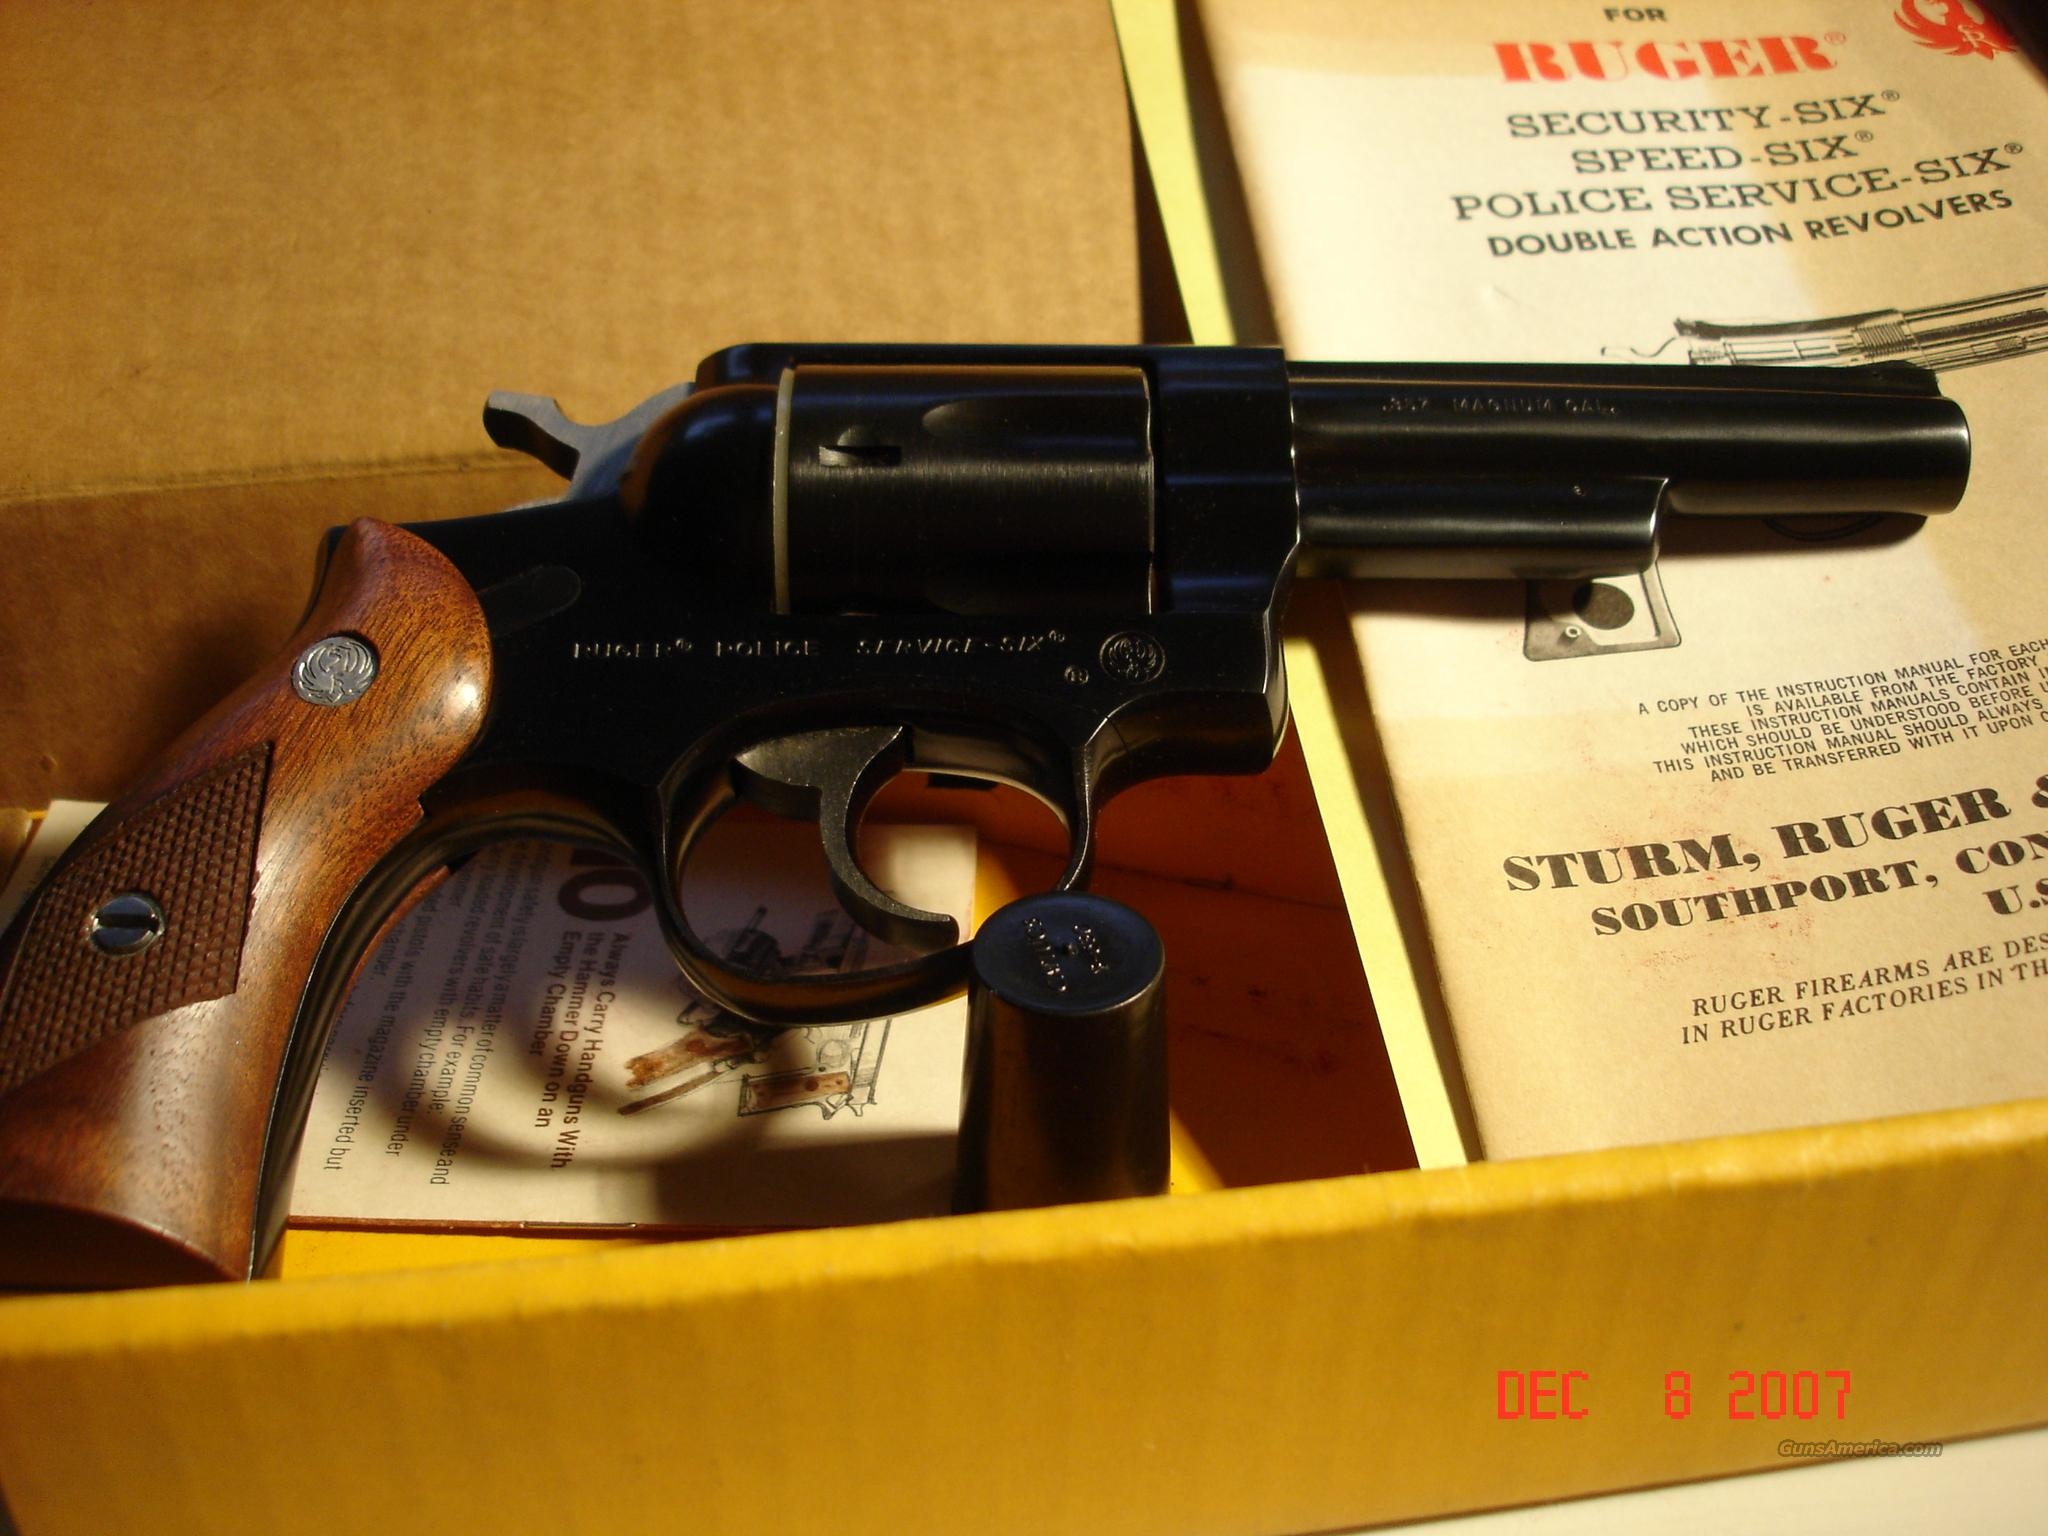 Ruger Police Service Six 357 Magnum  Guns > Pistols > Ruger Double Action Revolver > Security Six Type